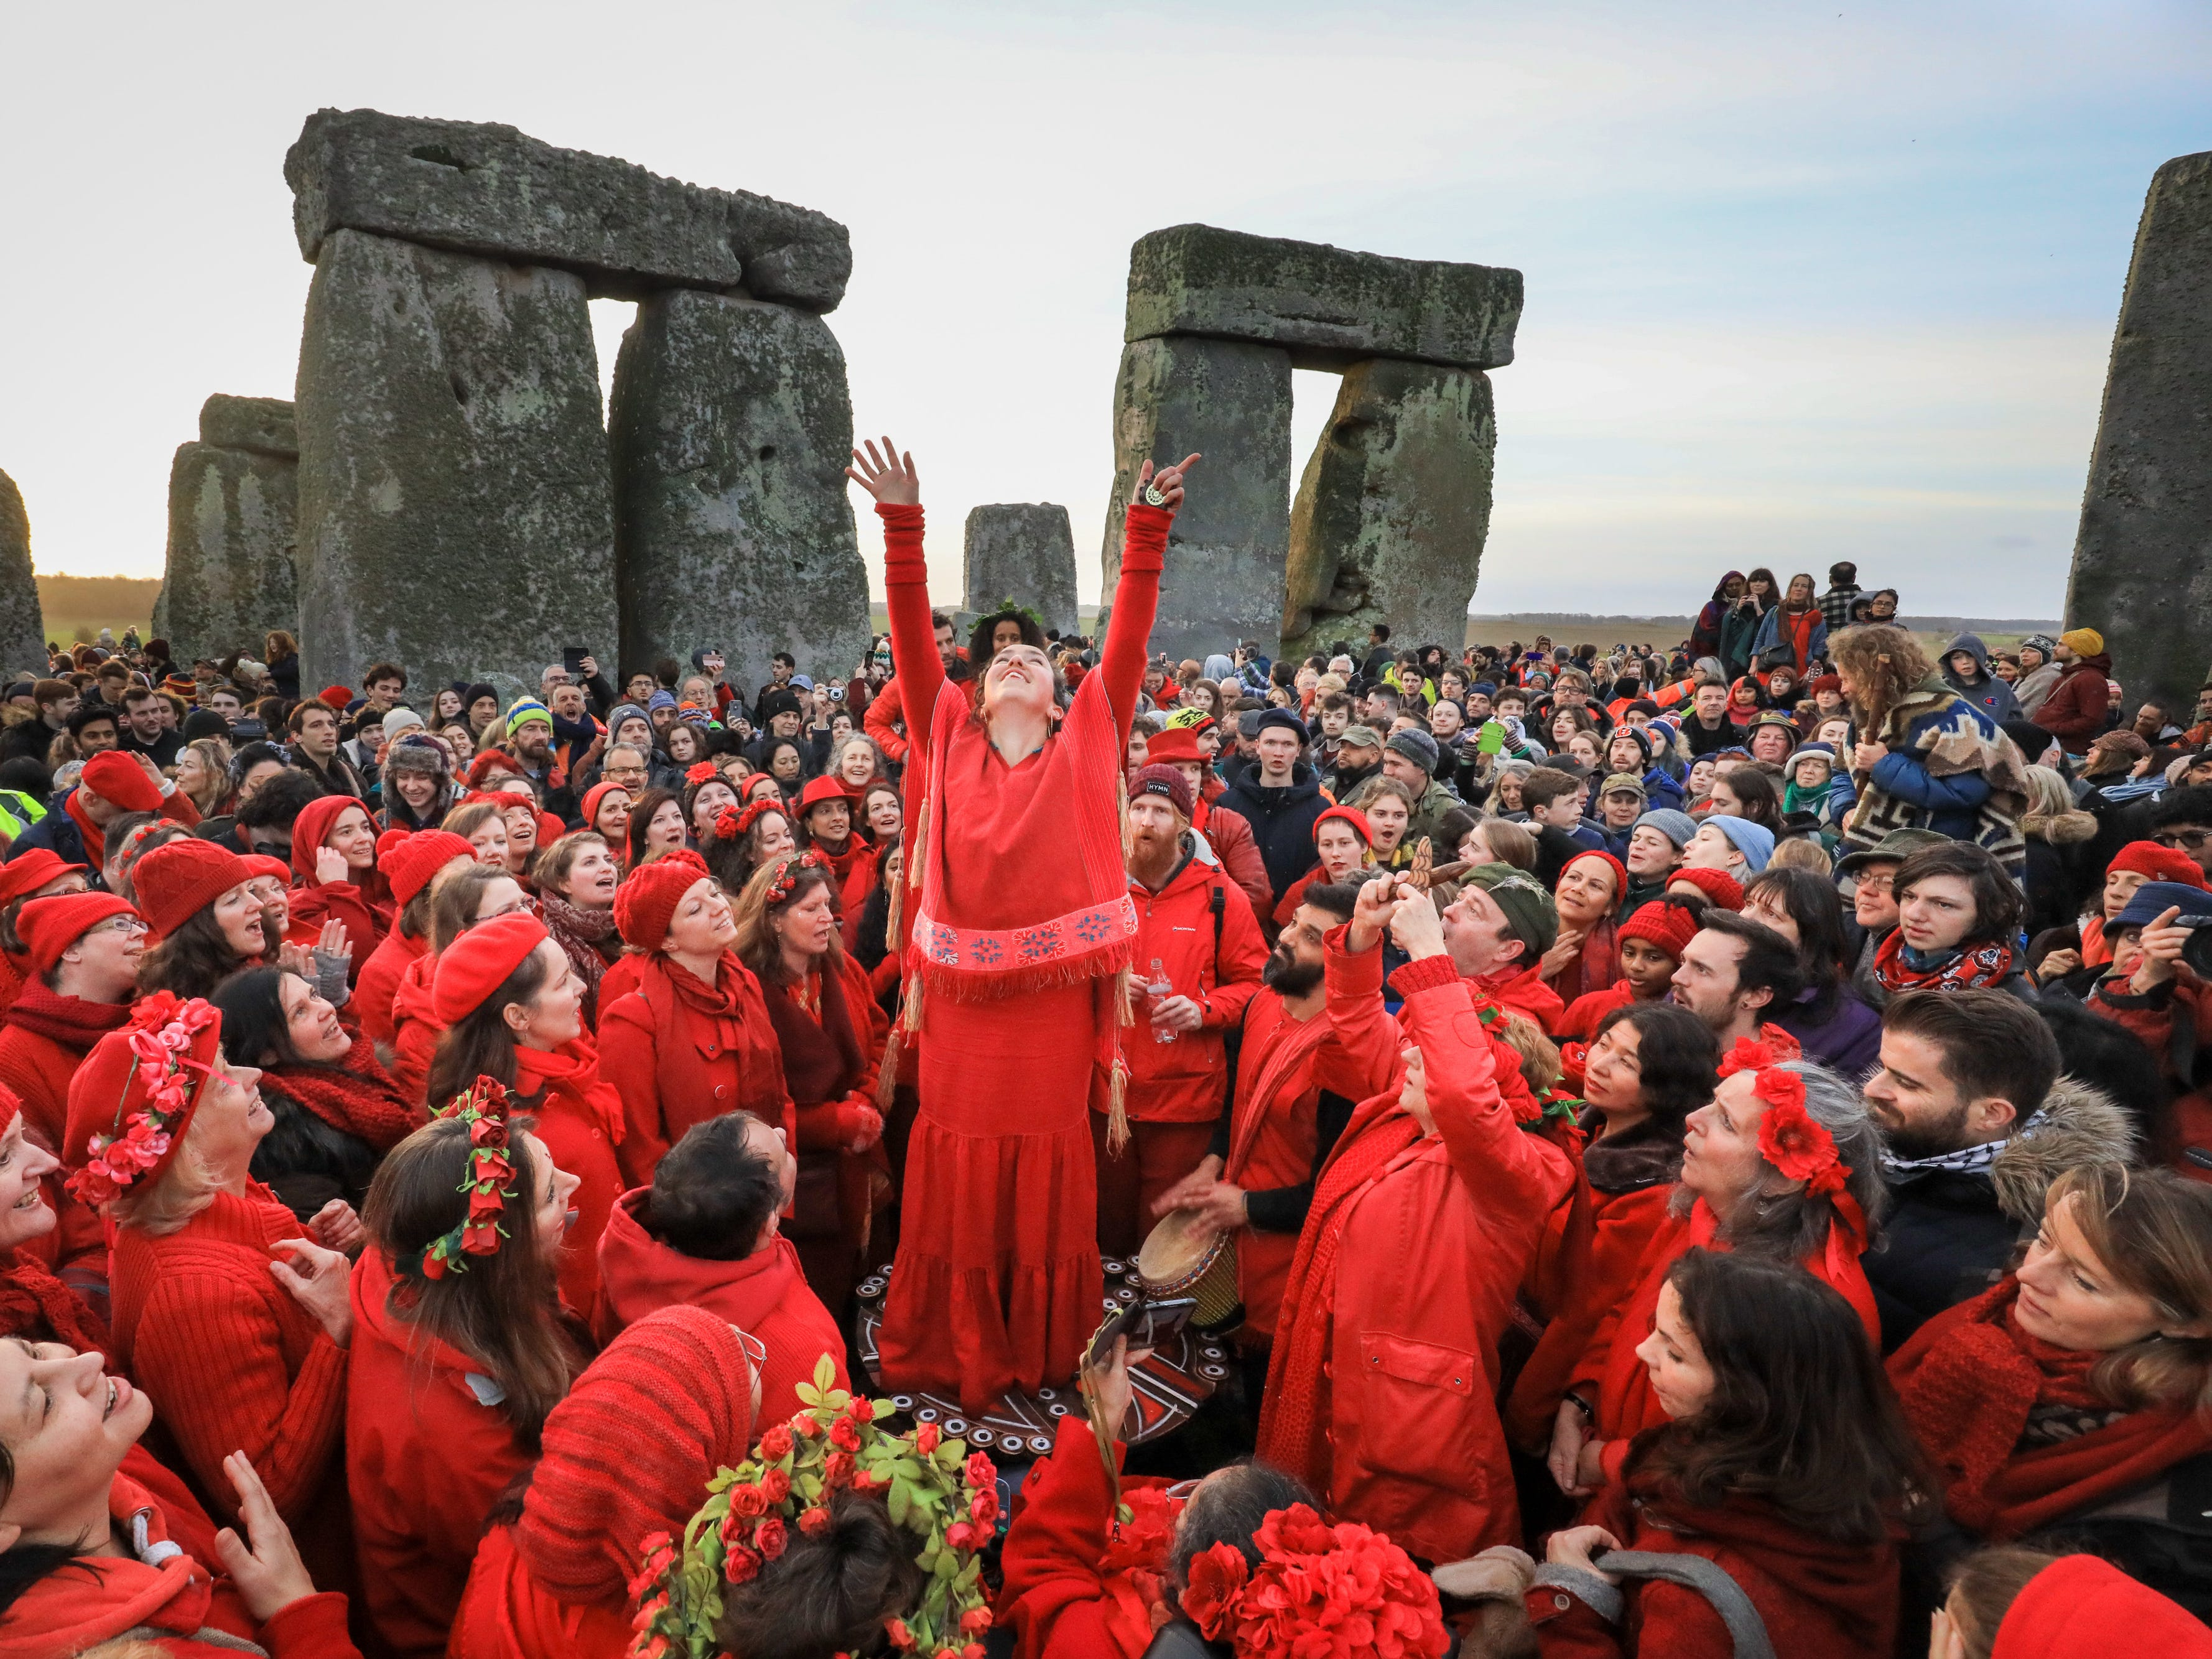 Members of the Shakti Sings choir sing as druids, pagans and revelers gather in the centre of Stonehenge.